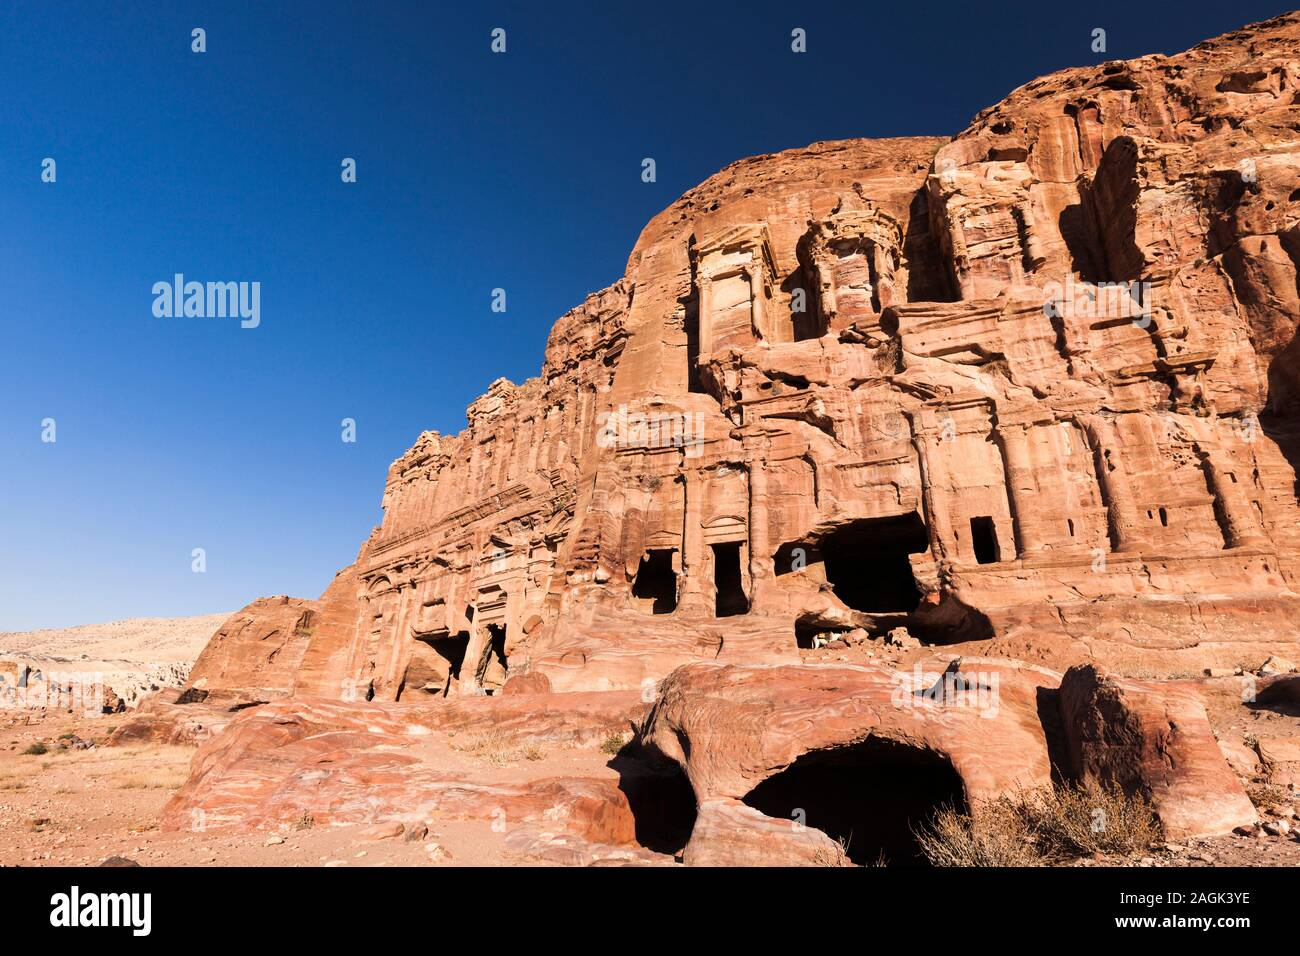 Petra, Royal Tombs in the Lost City, sculptured old architecture, Jordan, middle east, Asia Stock Photo